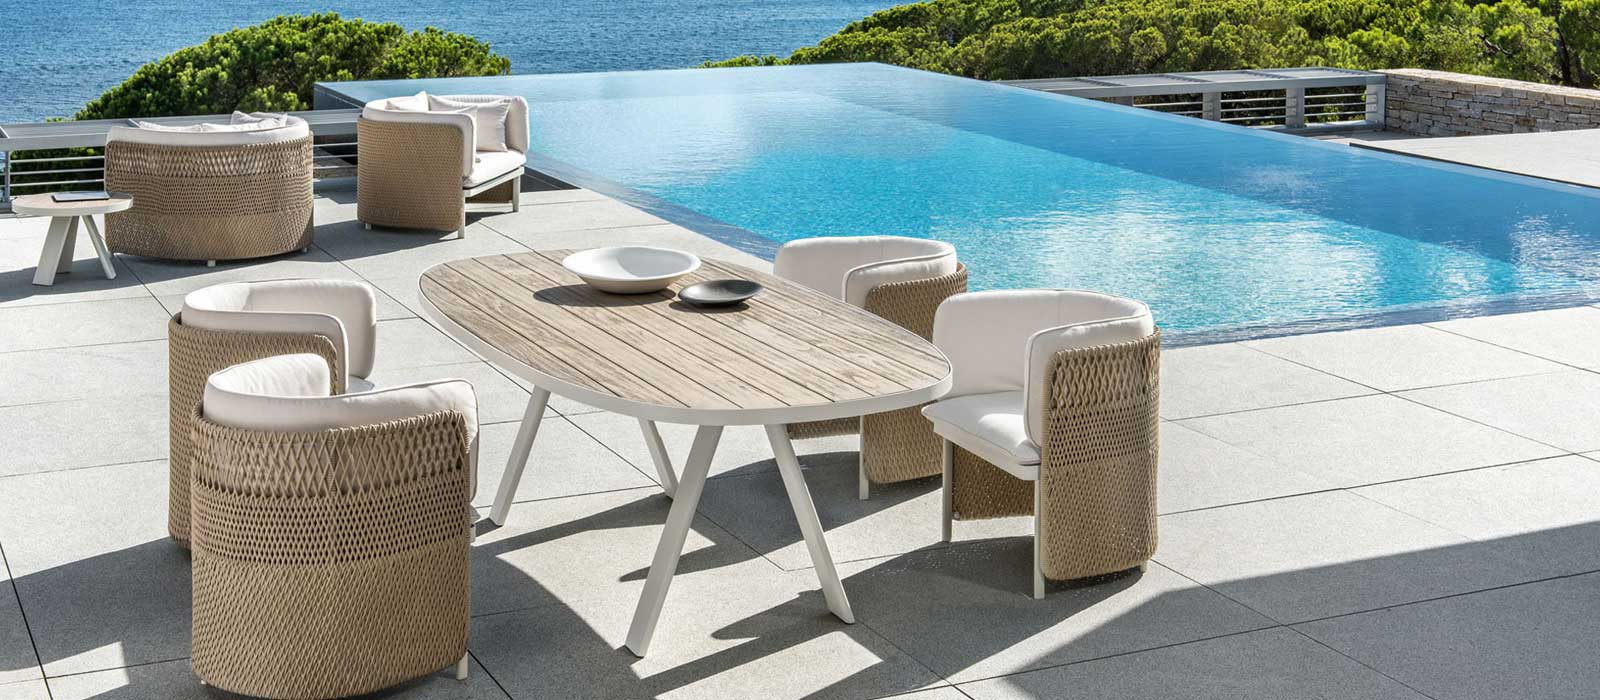 Poolside Furniture Manufacturers in Asansol